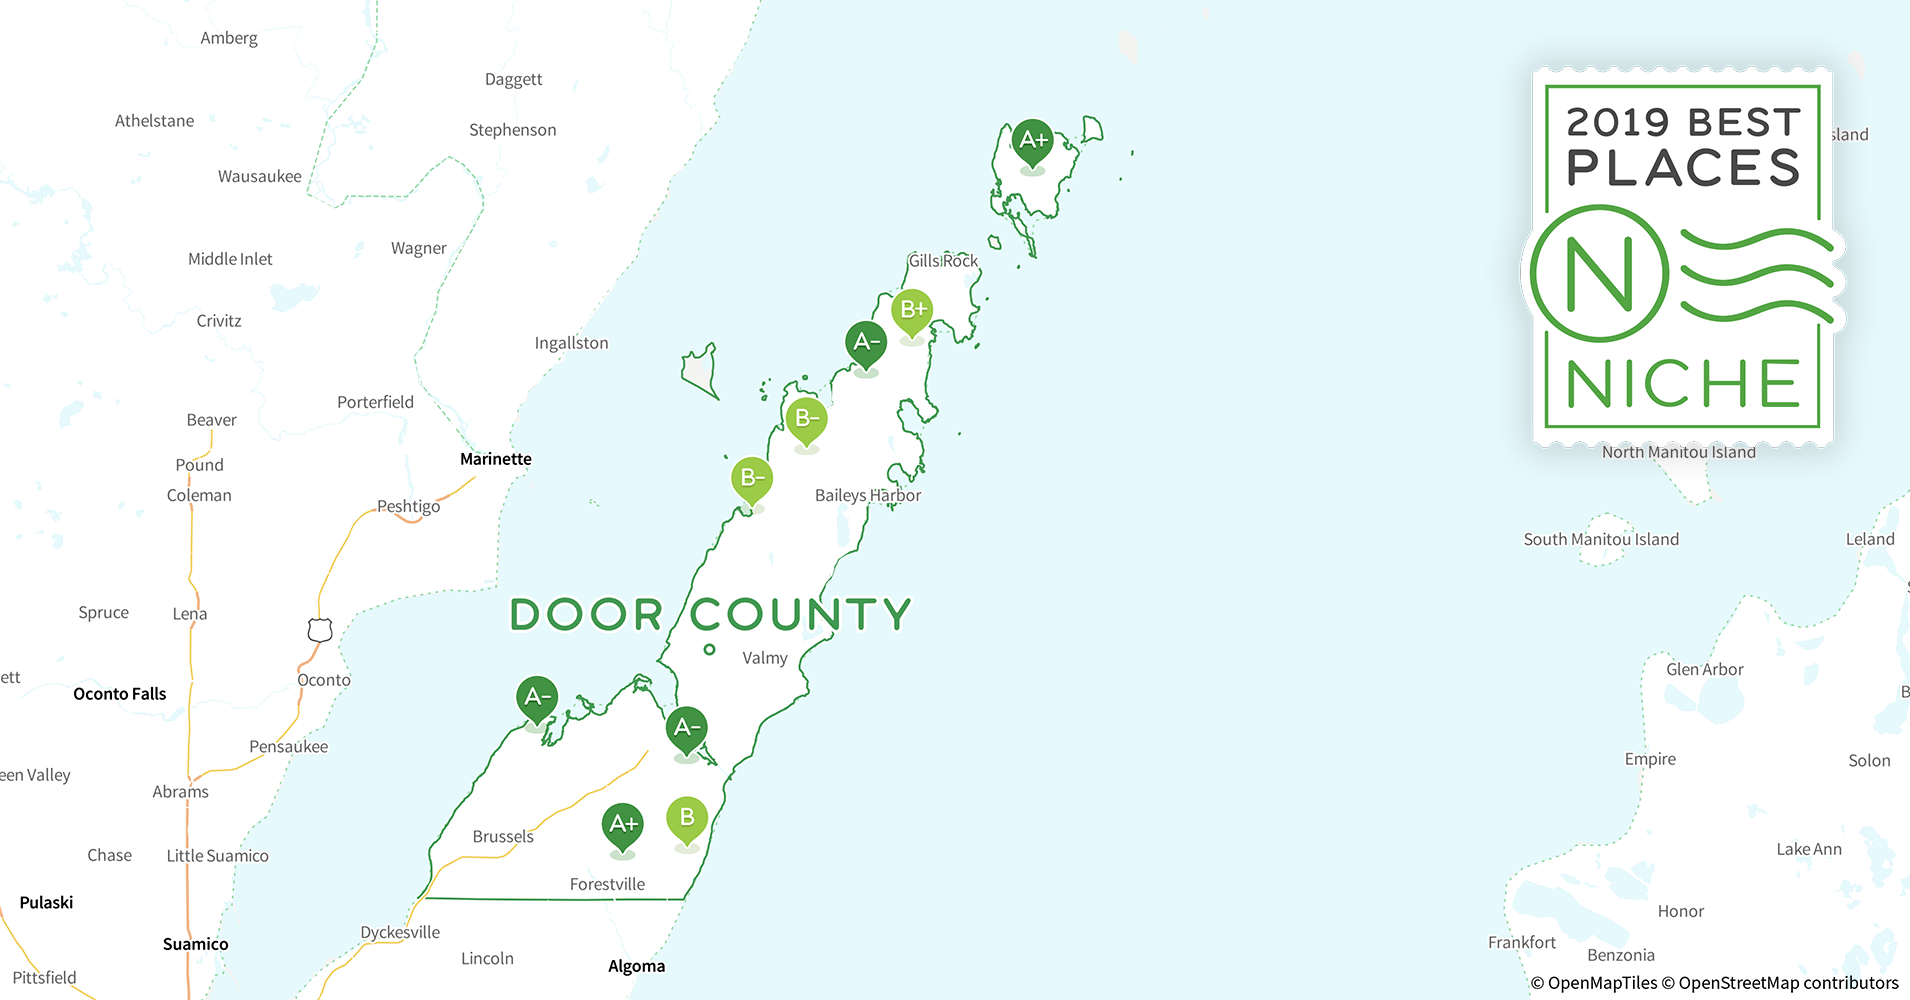 2019 Best Places to Live in Door County, WI - Niche Door County Wi Map Of Districts on map of peninsula state park wi, map of castle rock lake wi, map of lakewood wi, map of black river falls wi, map of apostle islands wi, map of city of madison wi, map of liberty grove wi, map of beloit wi, map of racine wi, map of green bay wi, map of washington island wi, map of algoma wi, map of baileys harbor wi, map of jacksonport wi, map of wisconsin, map of the fox valley wi, map of menomonie wi, map of ohio by county, map of de soto wi,